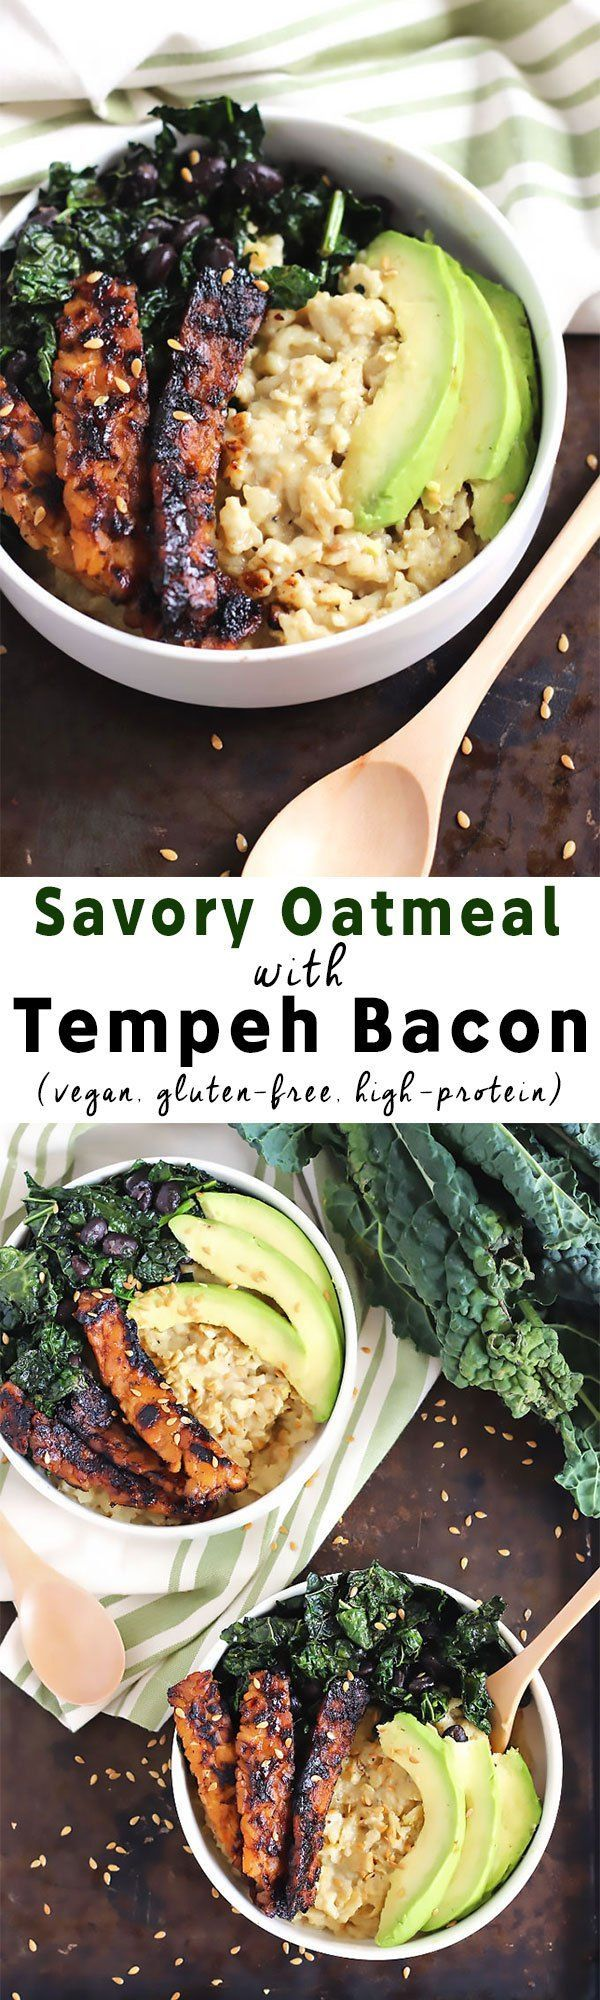 Switch up your normal sweet breakfast with this Vegan Savory Oatmeal! Topped with kale, black beans, and tempeh bacon, it's a plant protein powerhouse.